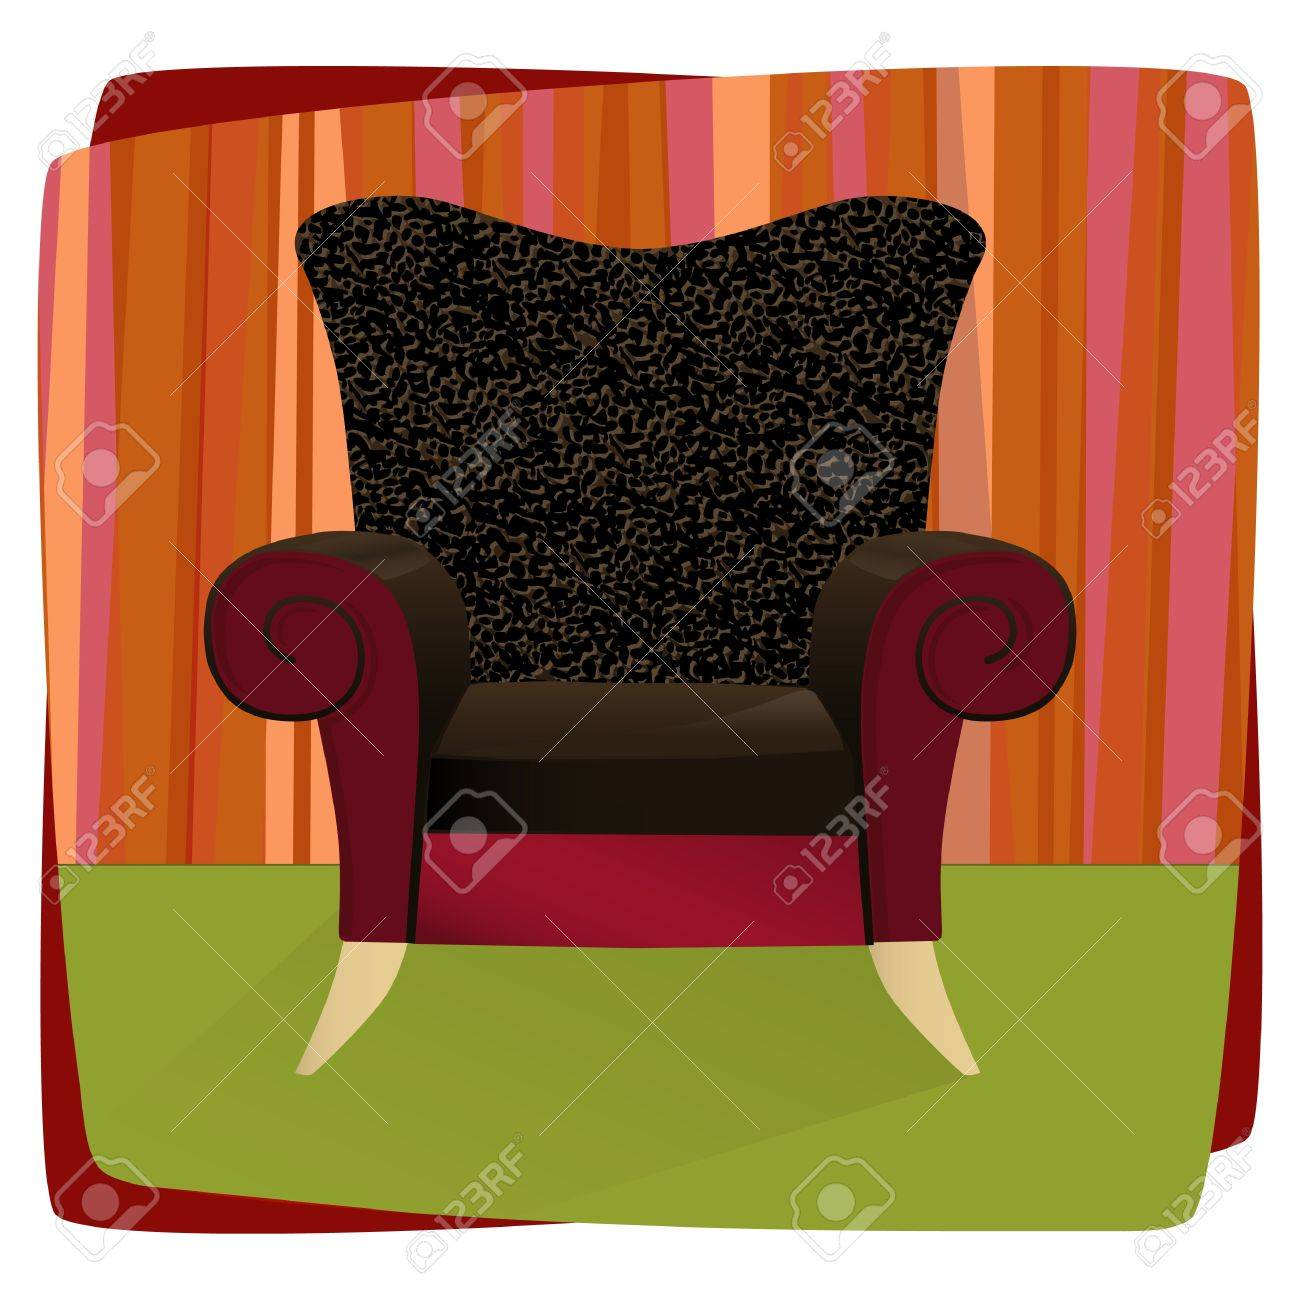 Whimsical Comfy Overstuffed Chair With Leopard Print Velvet